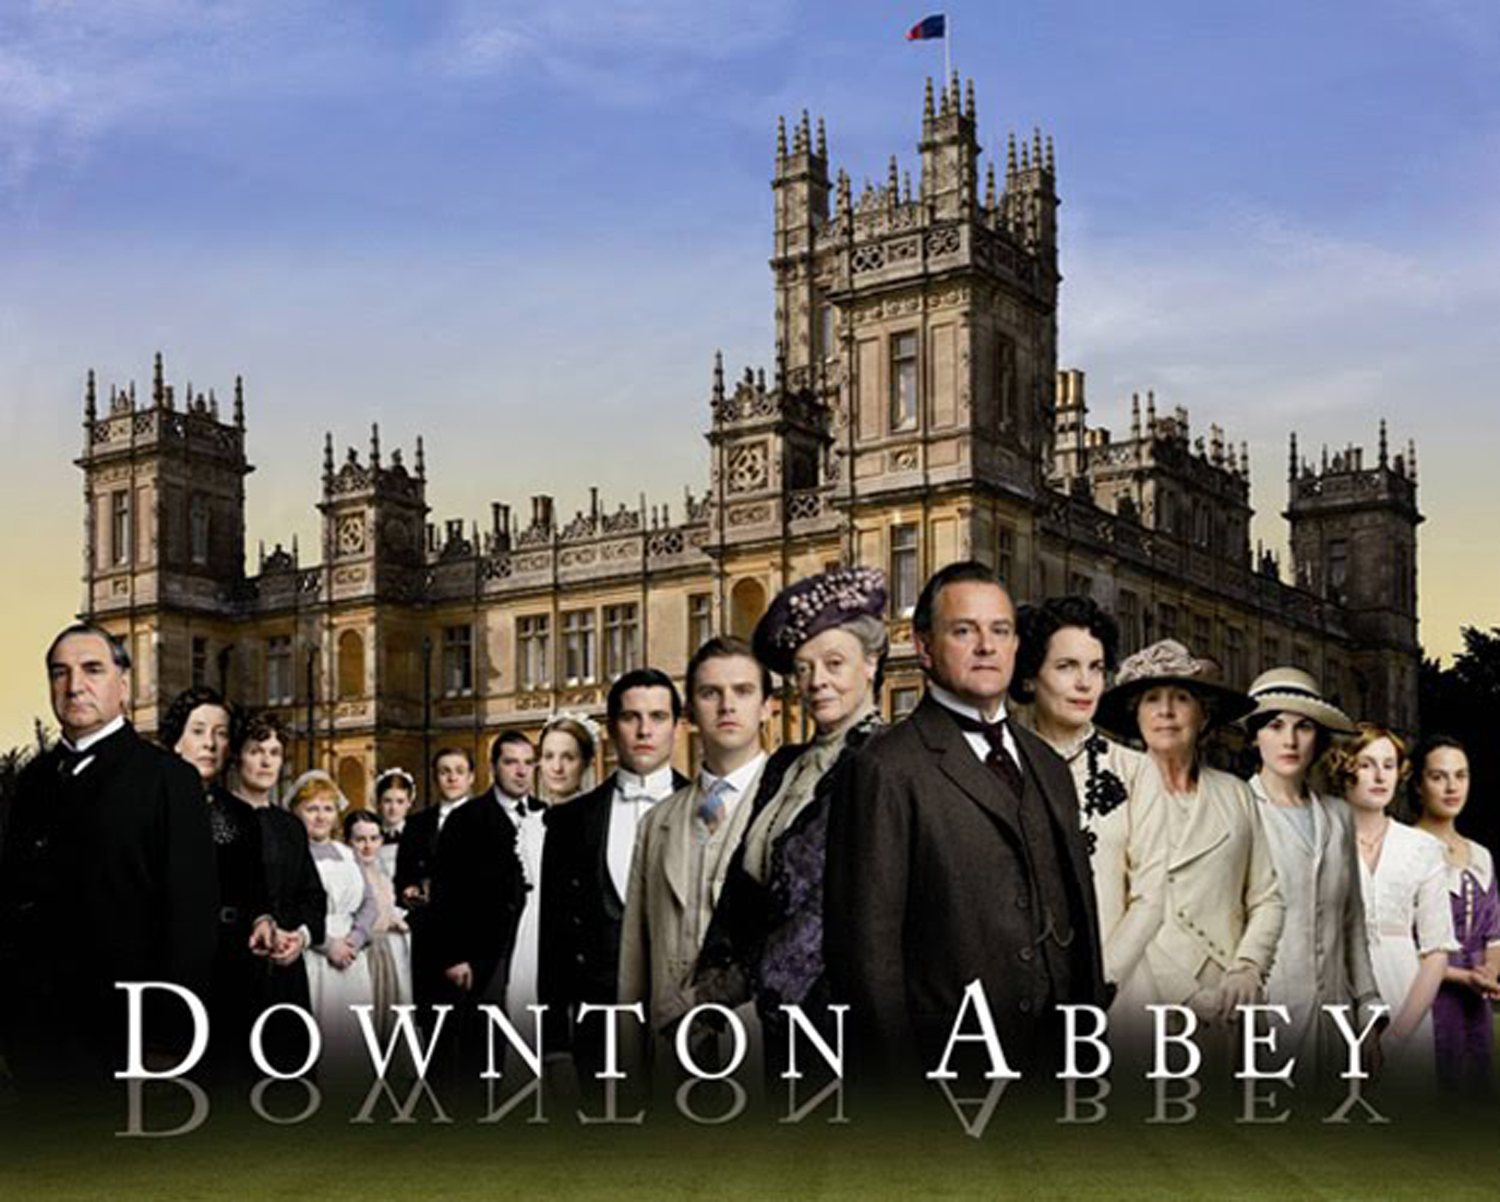 An Evening at Downton Abbey